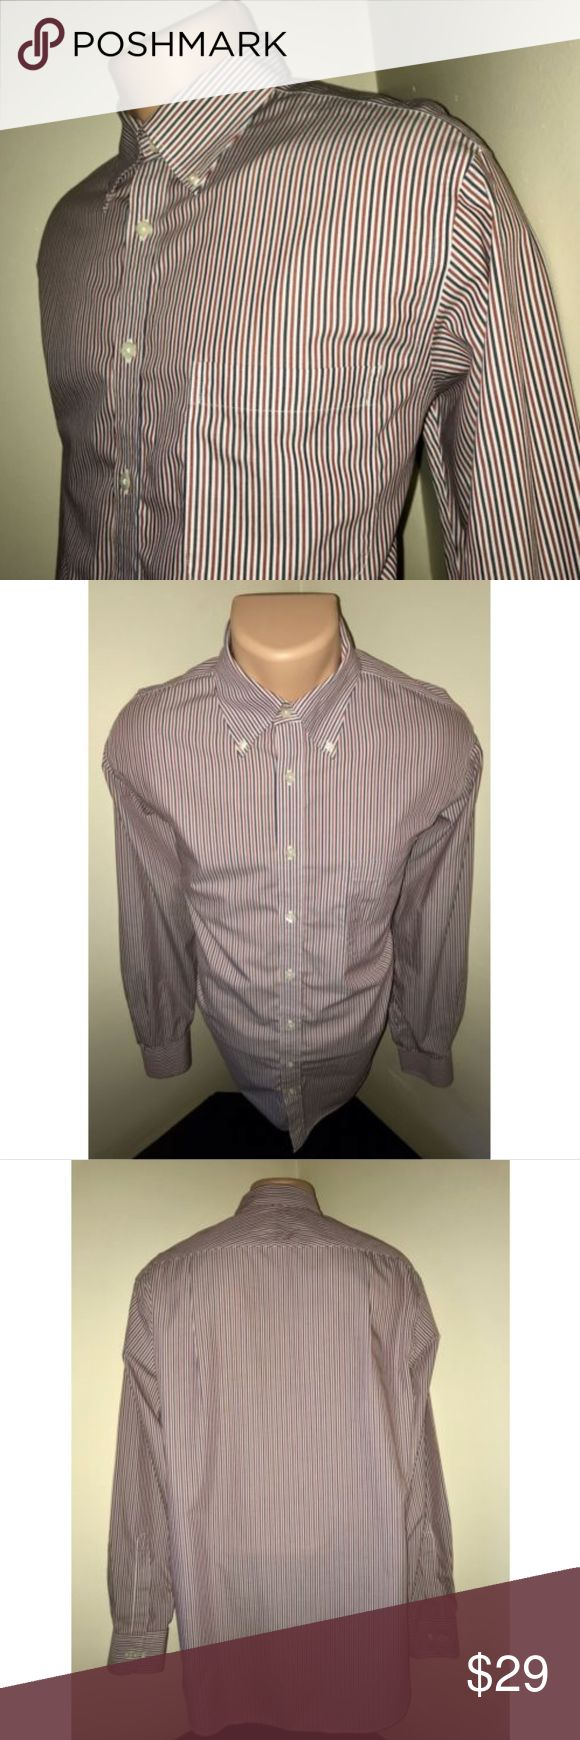 CHARLES TYRWHITT Jermyn Street Non Iron Shirt Sz L PLEASE NOTE MEASUREMENTS BELOW TO ENSURE PROPER FIT  Size: Large Color: Red, White & Blue Striped Tag Measurements- L Material: 100% Cotton Condition: Excellent Features: Long Sleeve, Comfortable and lightweight, Worn a few times, Button Down Collar, Standard cuffs Flaws: None  Measurements:  Chest - 23.5 inches  Shoulder - 19 inches  Sleeve - 26 inches  Length - 32.5 inches Charles Tyrwhitt Shirts Dress Shirts